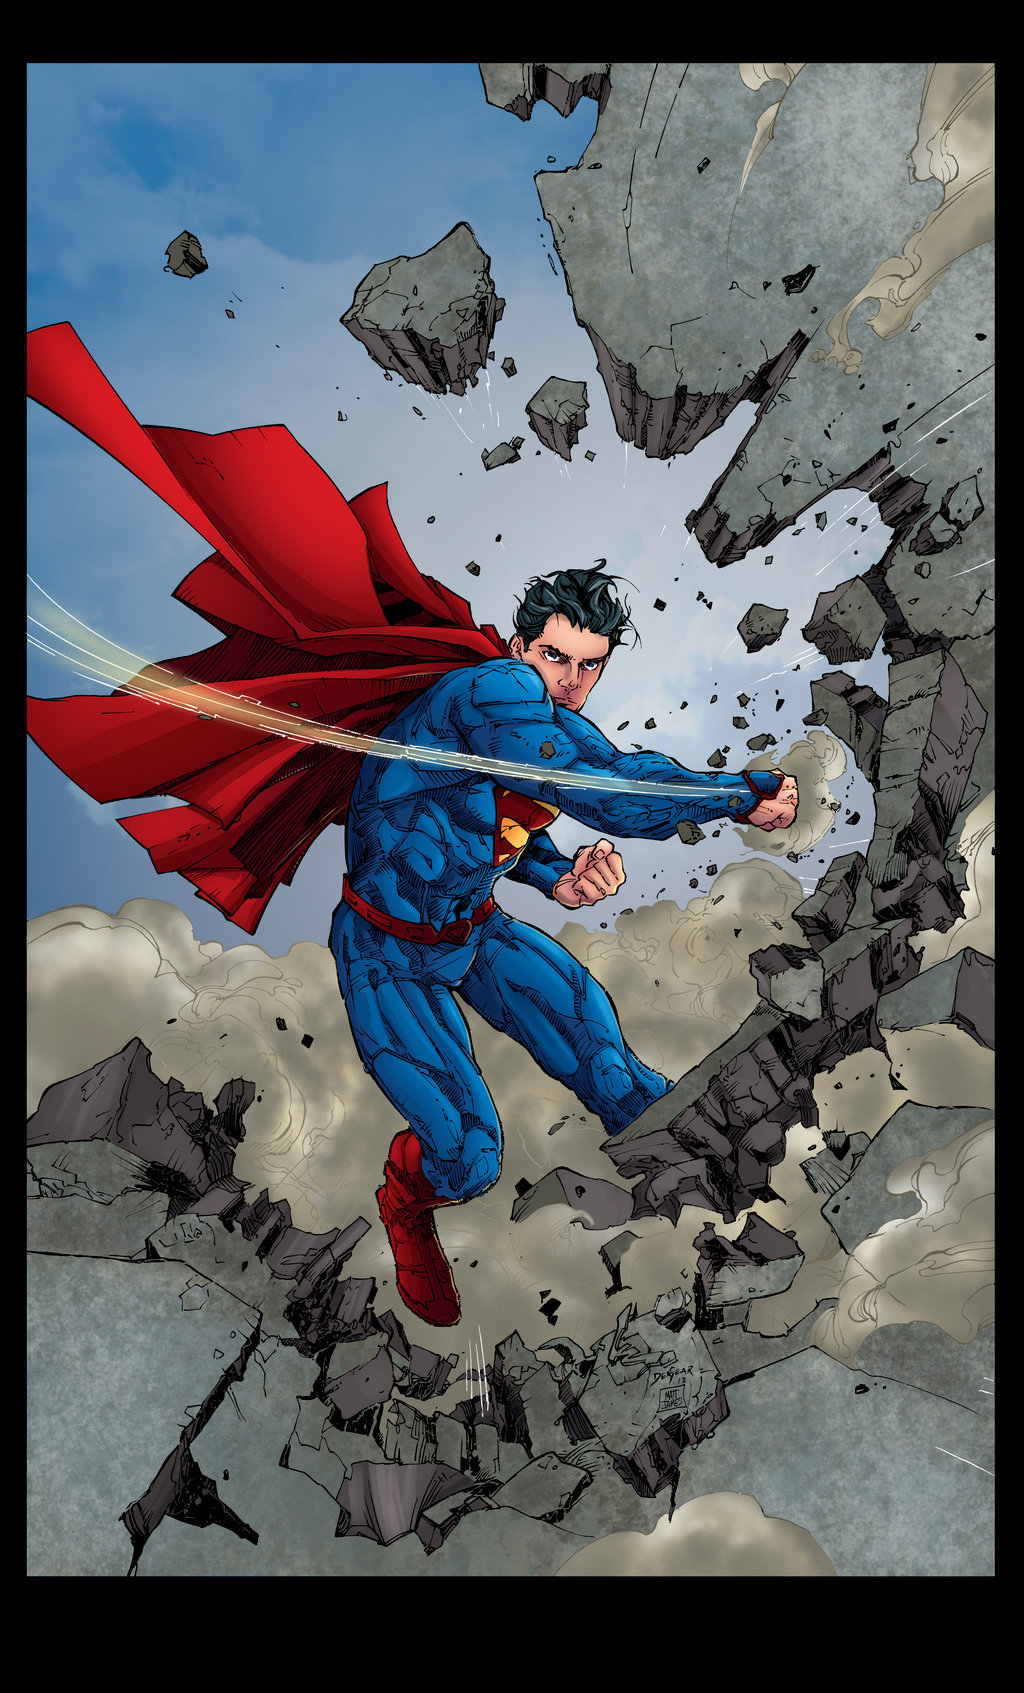 Matt james superman 13 cover by mattjamescomicarts d8rjwky